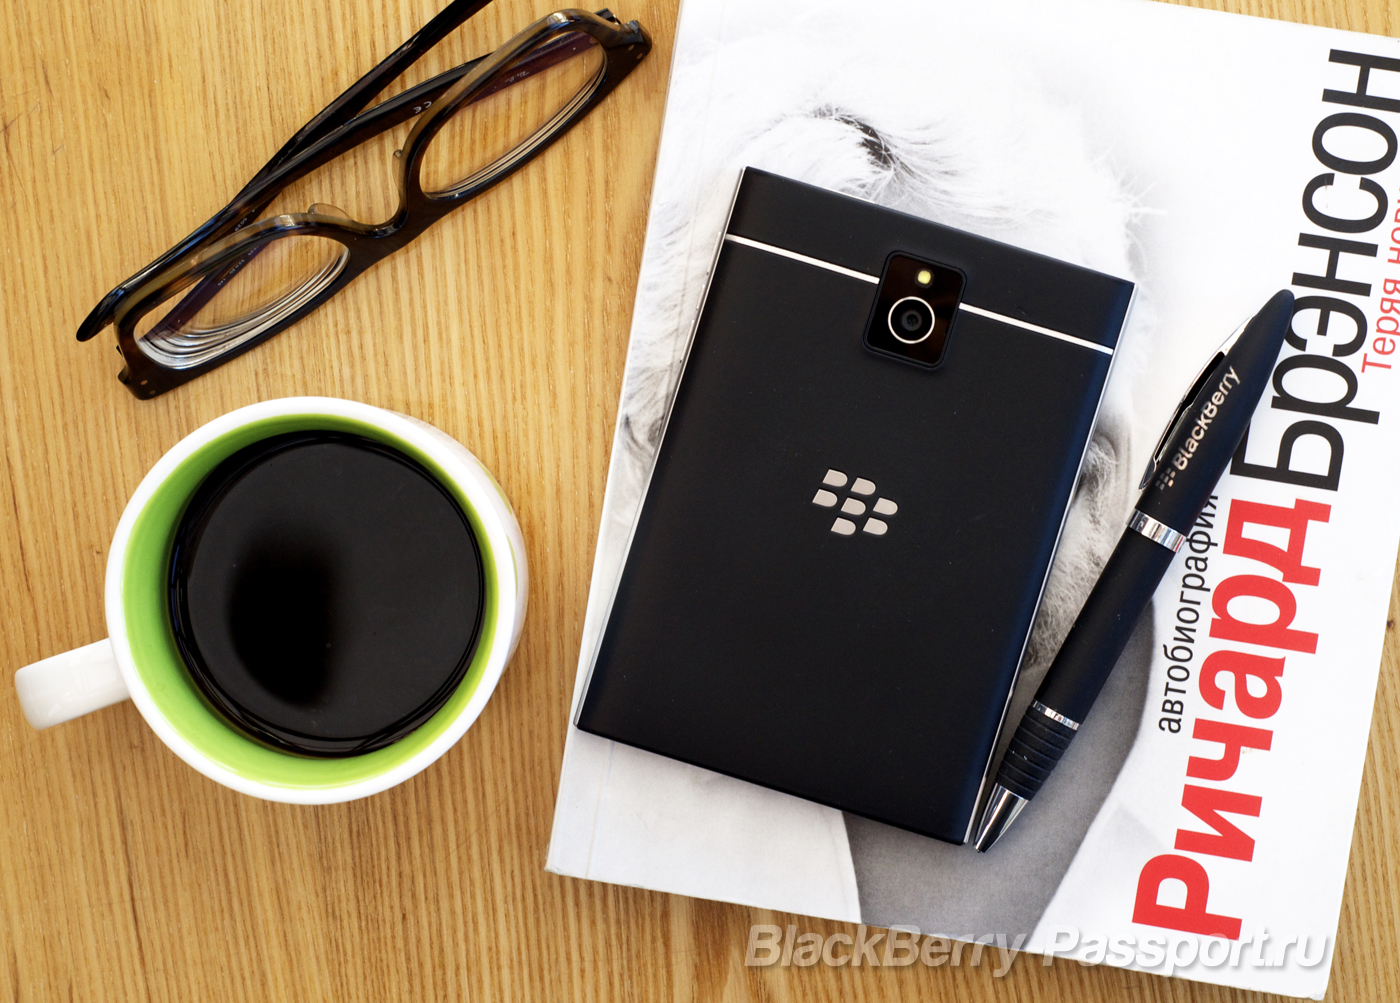 BlackBerry-Passport-BP